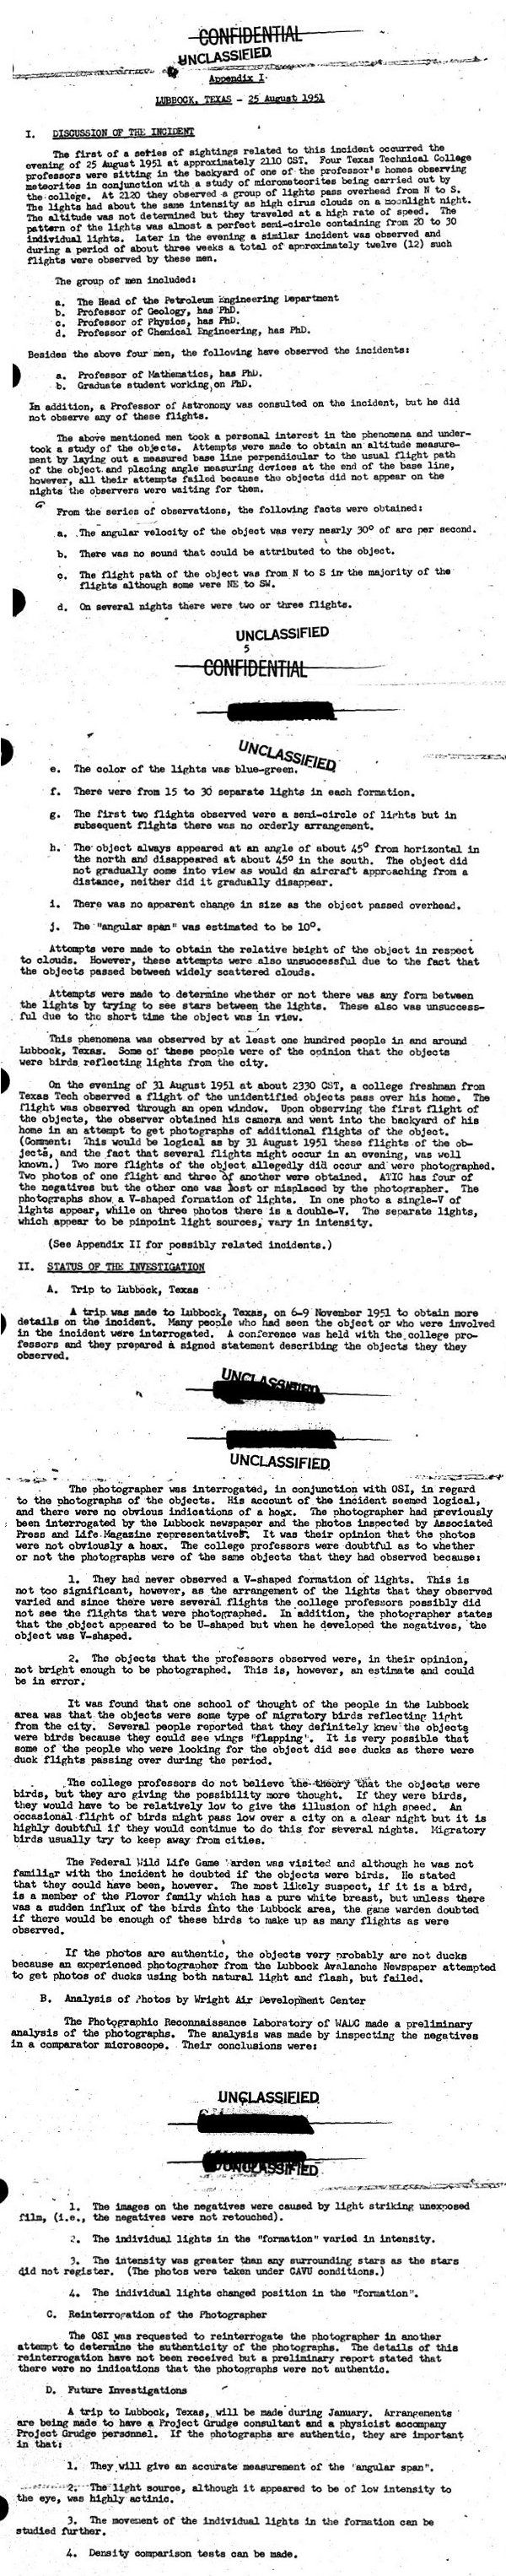 US Air Force Report on The Lubbock Lights